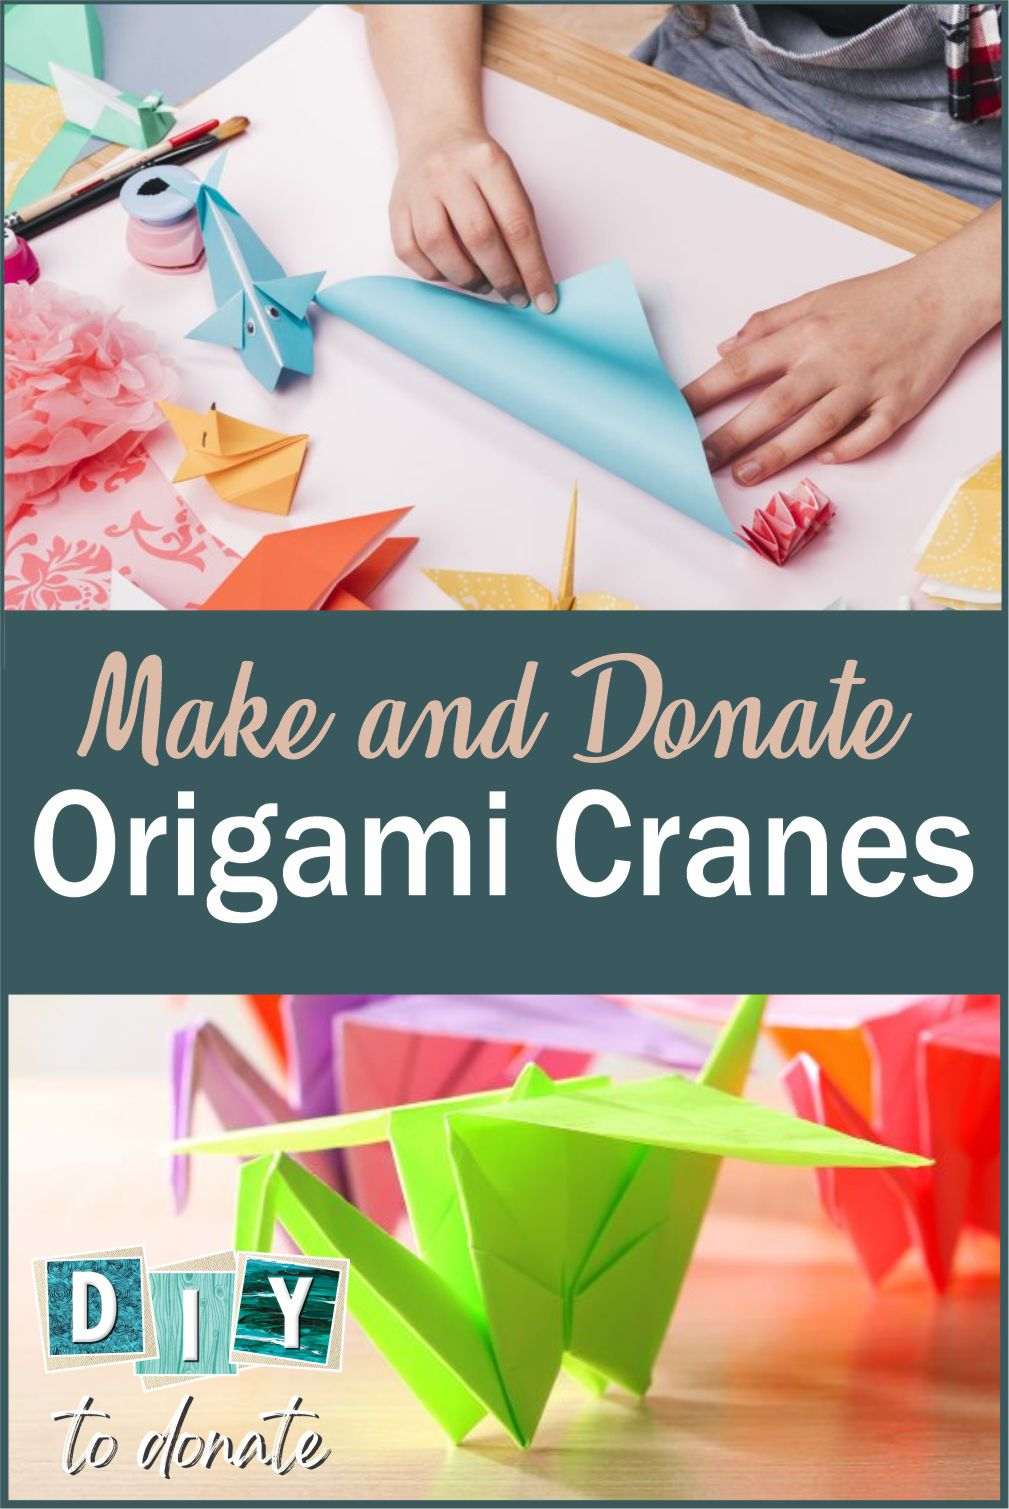 For centuries the crane has been regarded as a symbol of hope and healing. Follow our easy origami tutorial to make cranes. Find out where to donate them. #diytodonate #donate #origami #givingback #donate #cranes